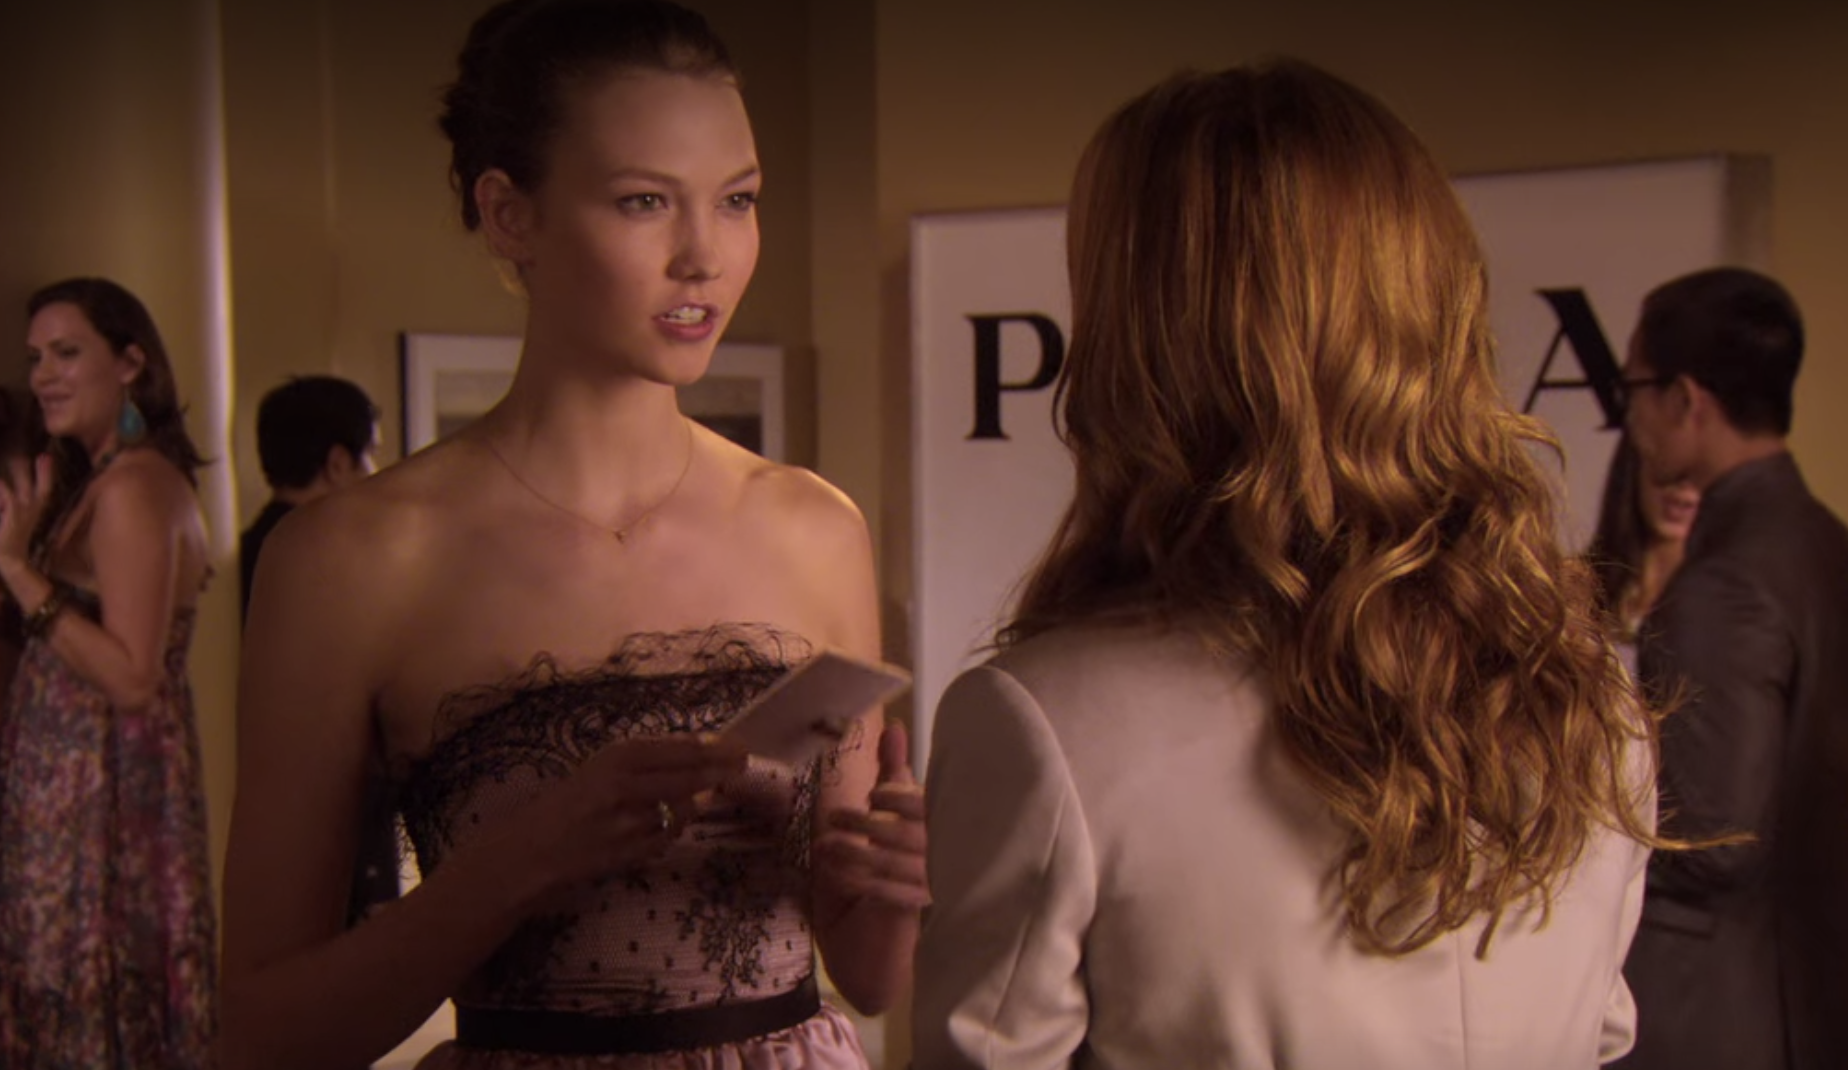 Karlie Kloss accepts a card from Juliet at Lily's house